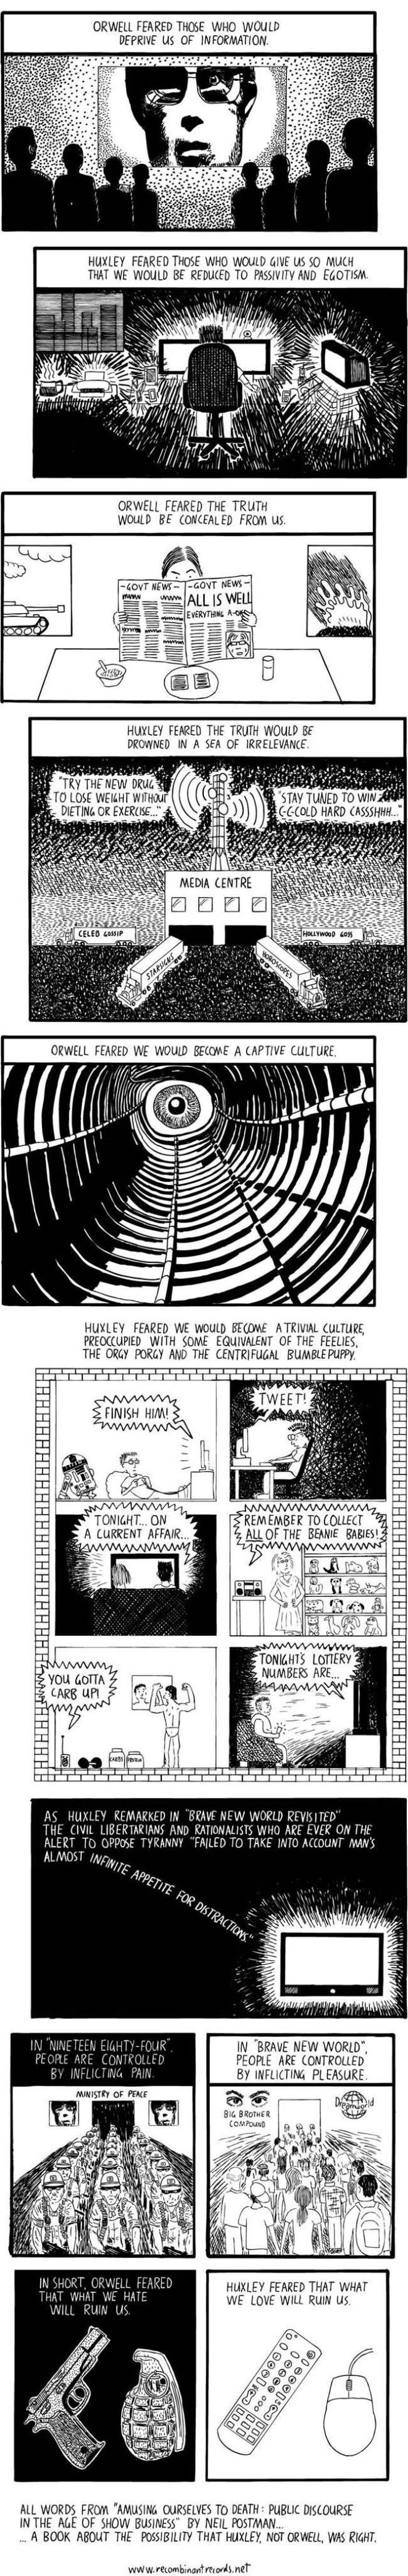 Terrifying Predictions By Huxley And Orwell That Are Turning Out To Be True (3 pics)